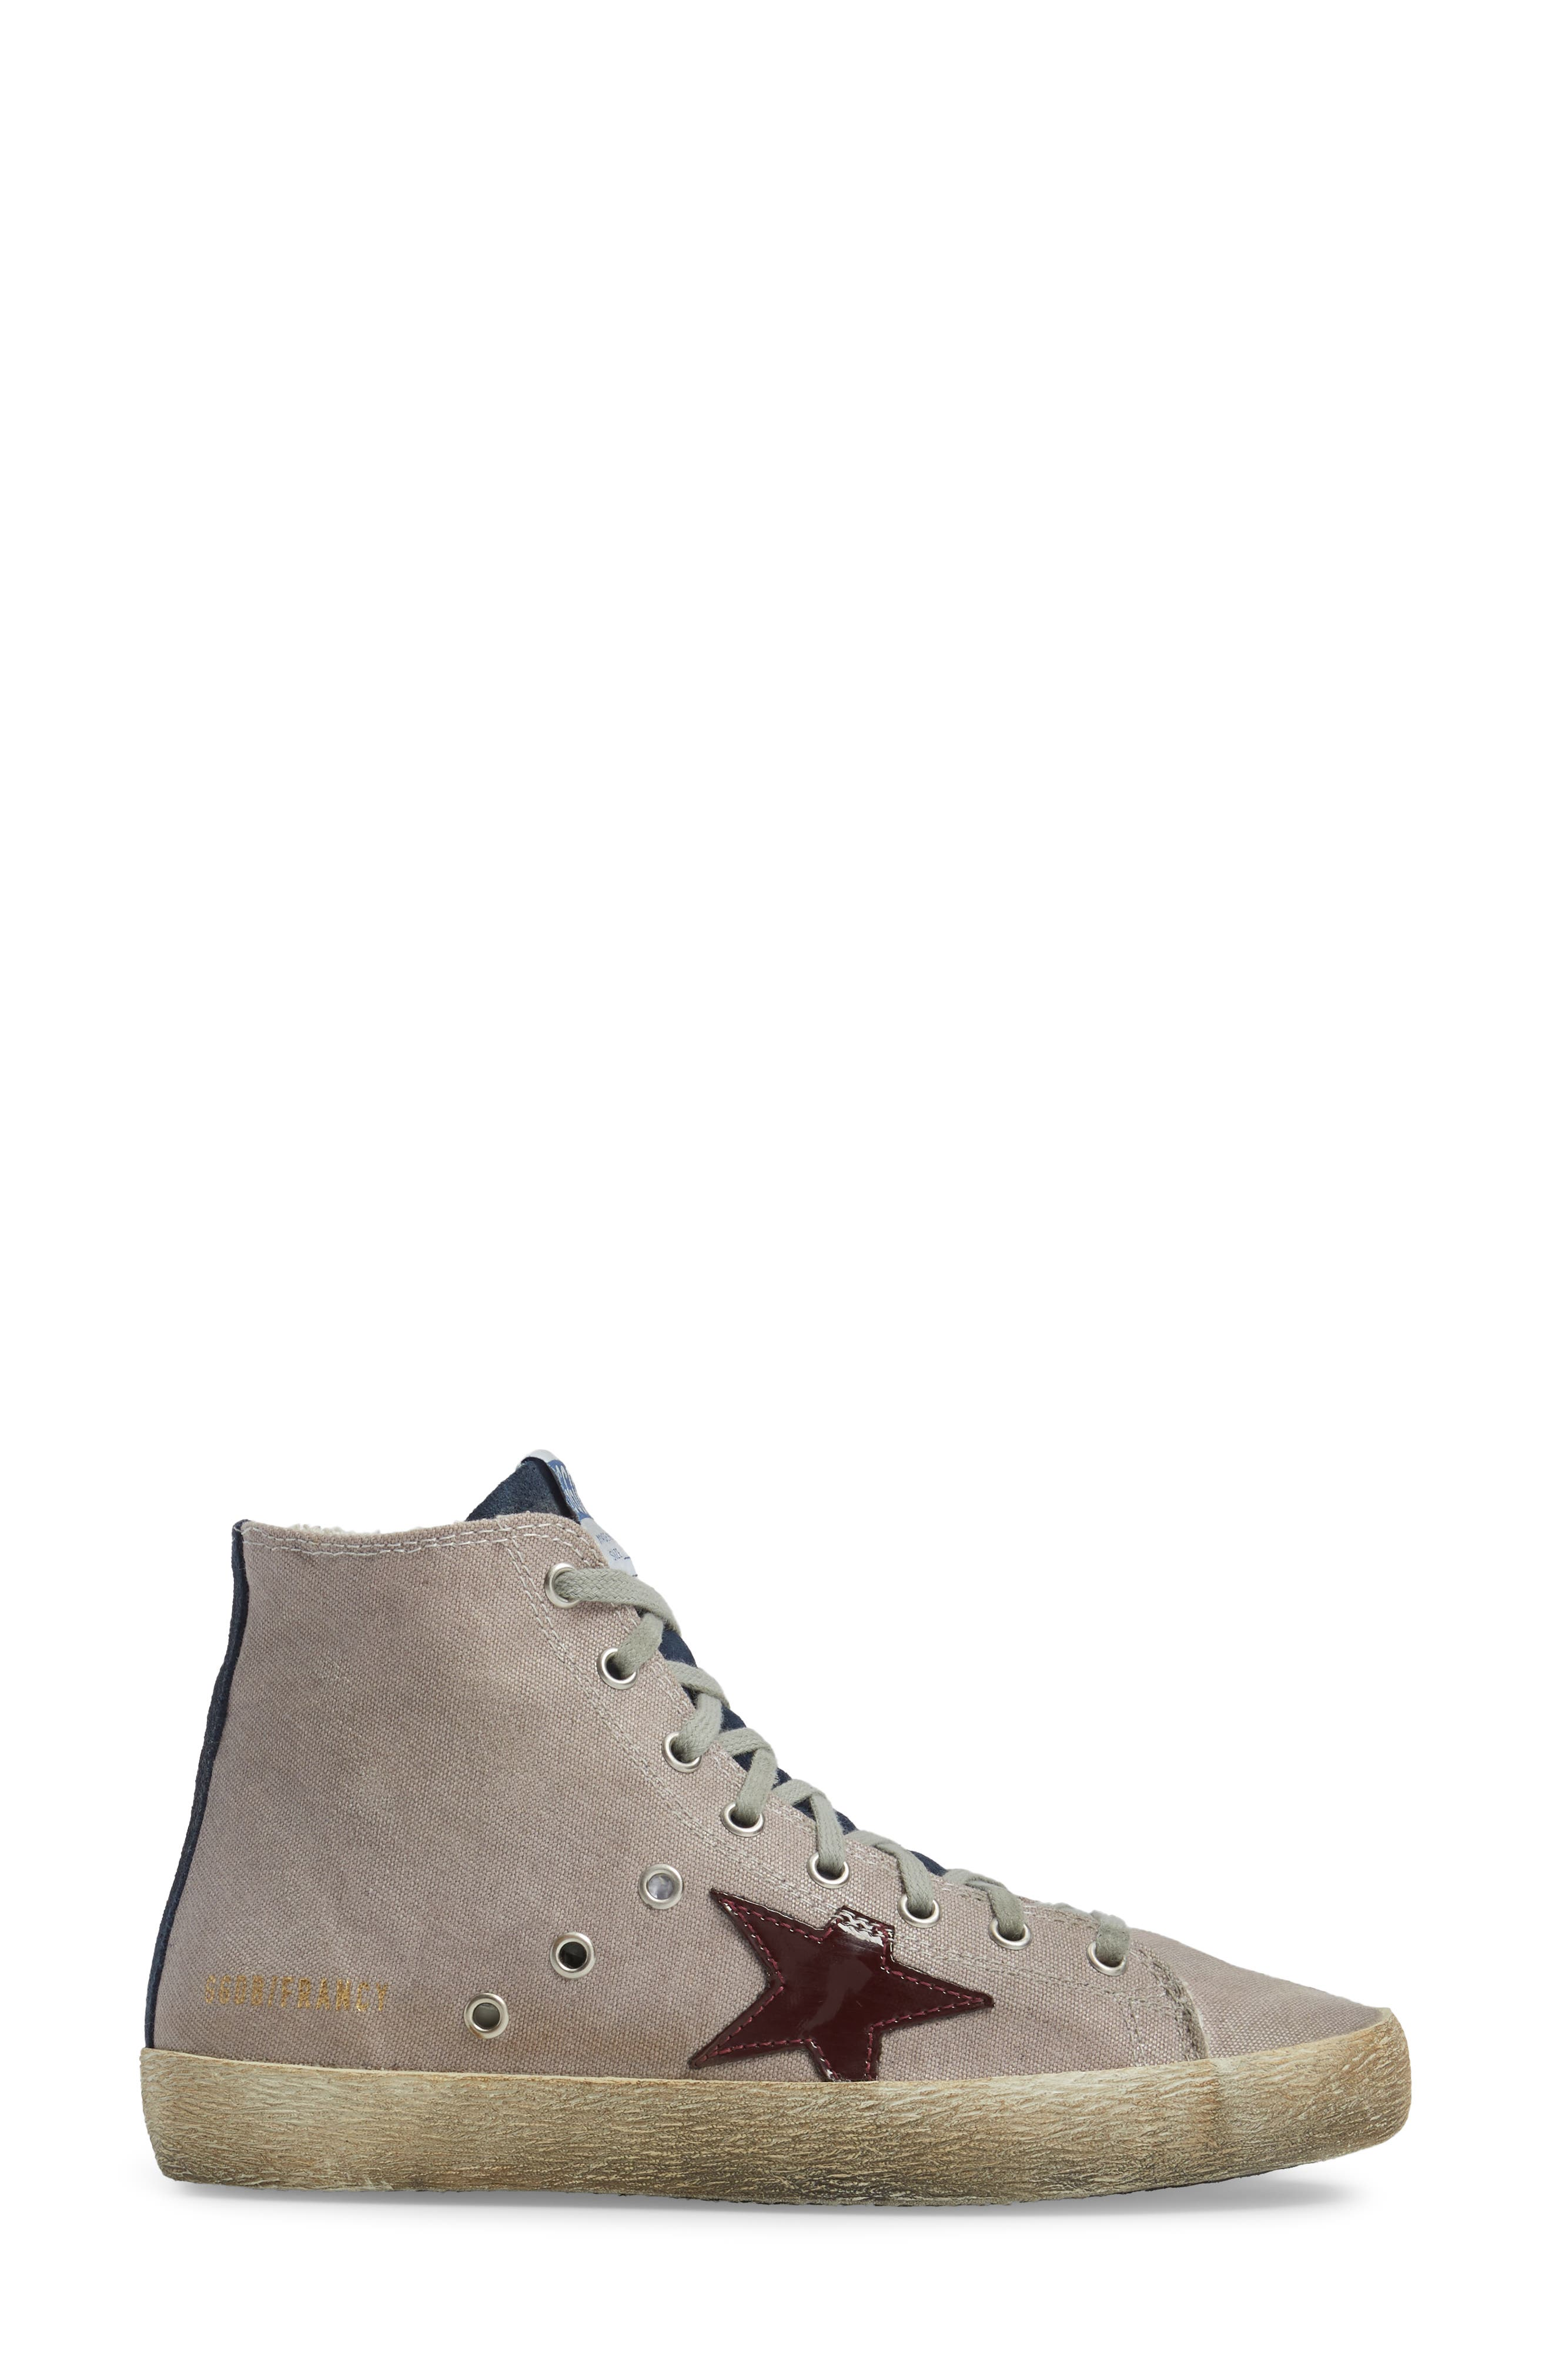 Alternate Image 3  - Golden Goose Francy Mid Top Sneaker (Women)